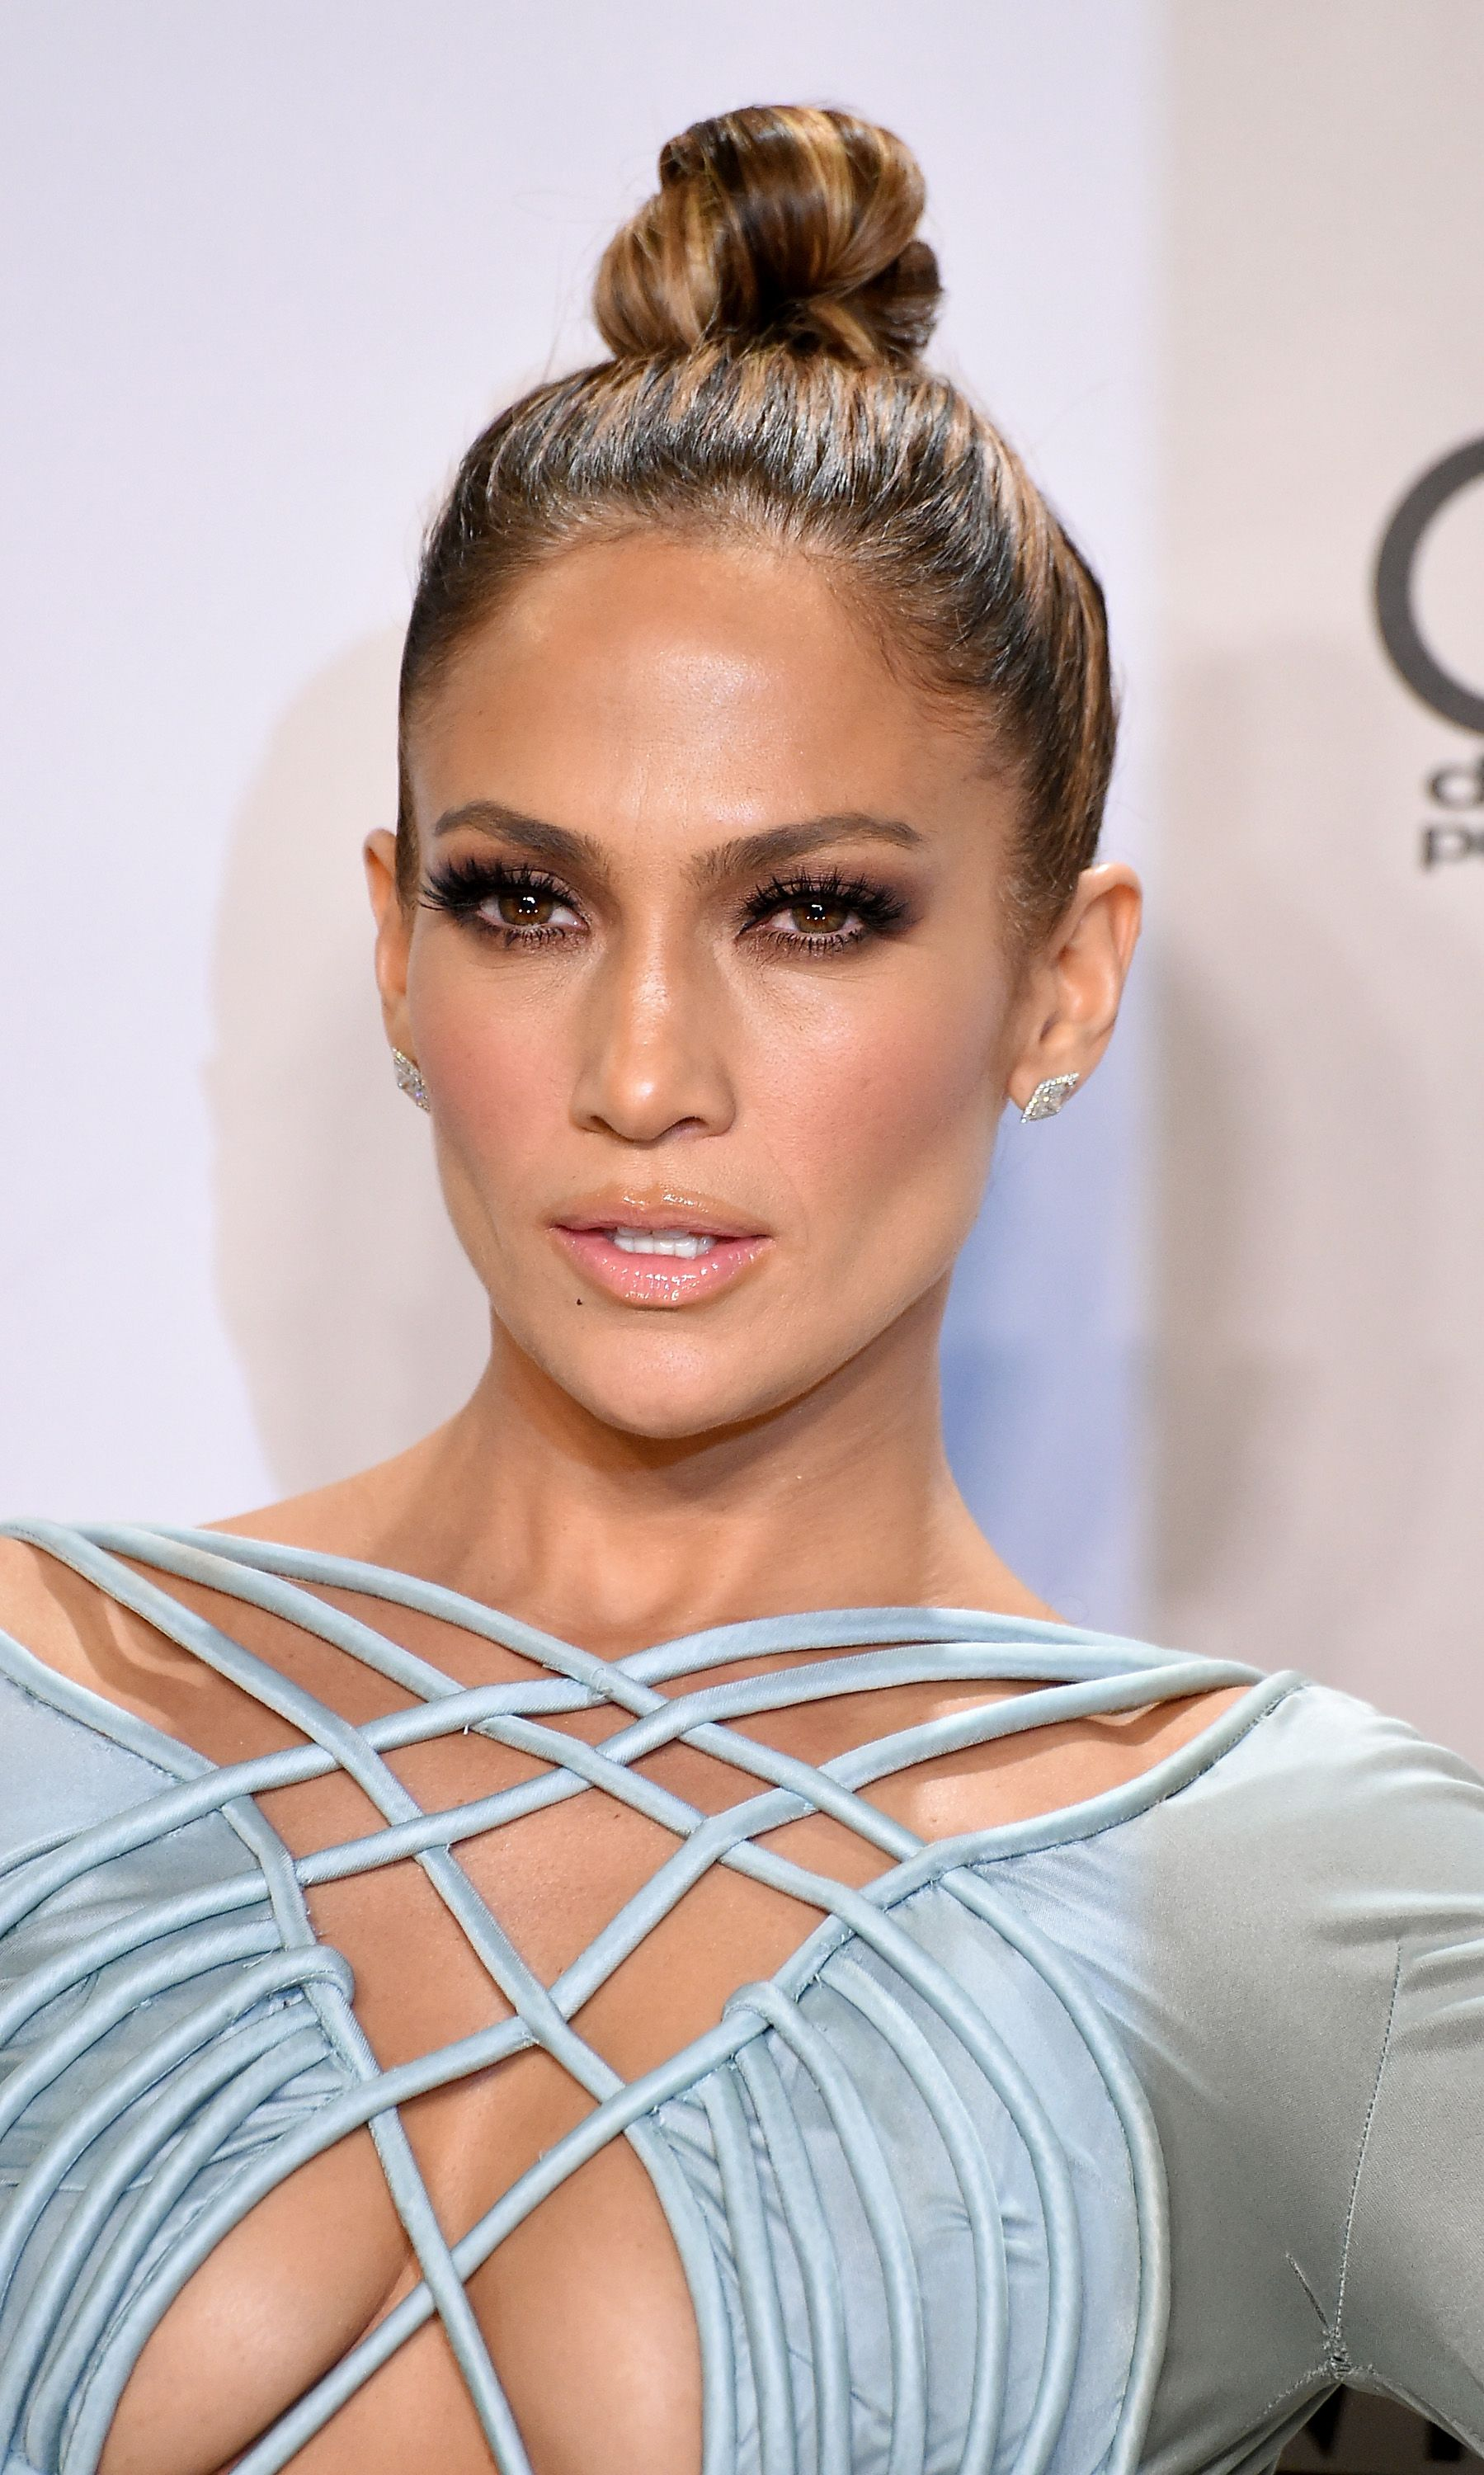 50 Must See Celebrity Top Knots from the Teeny Tiny to the Towering